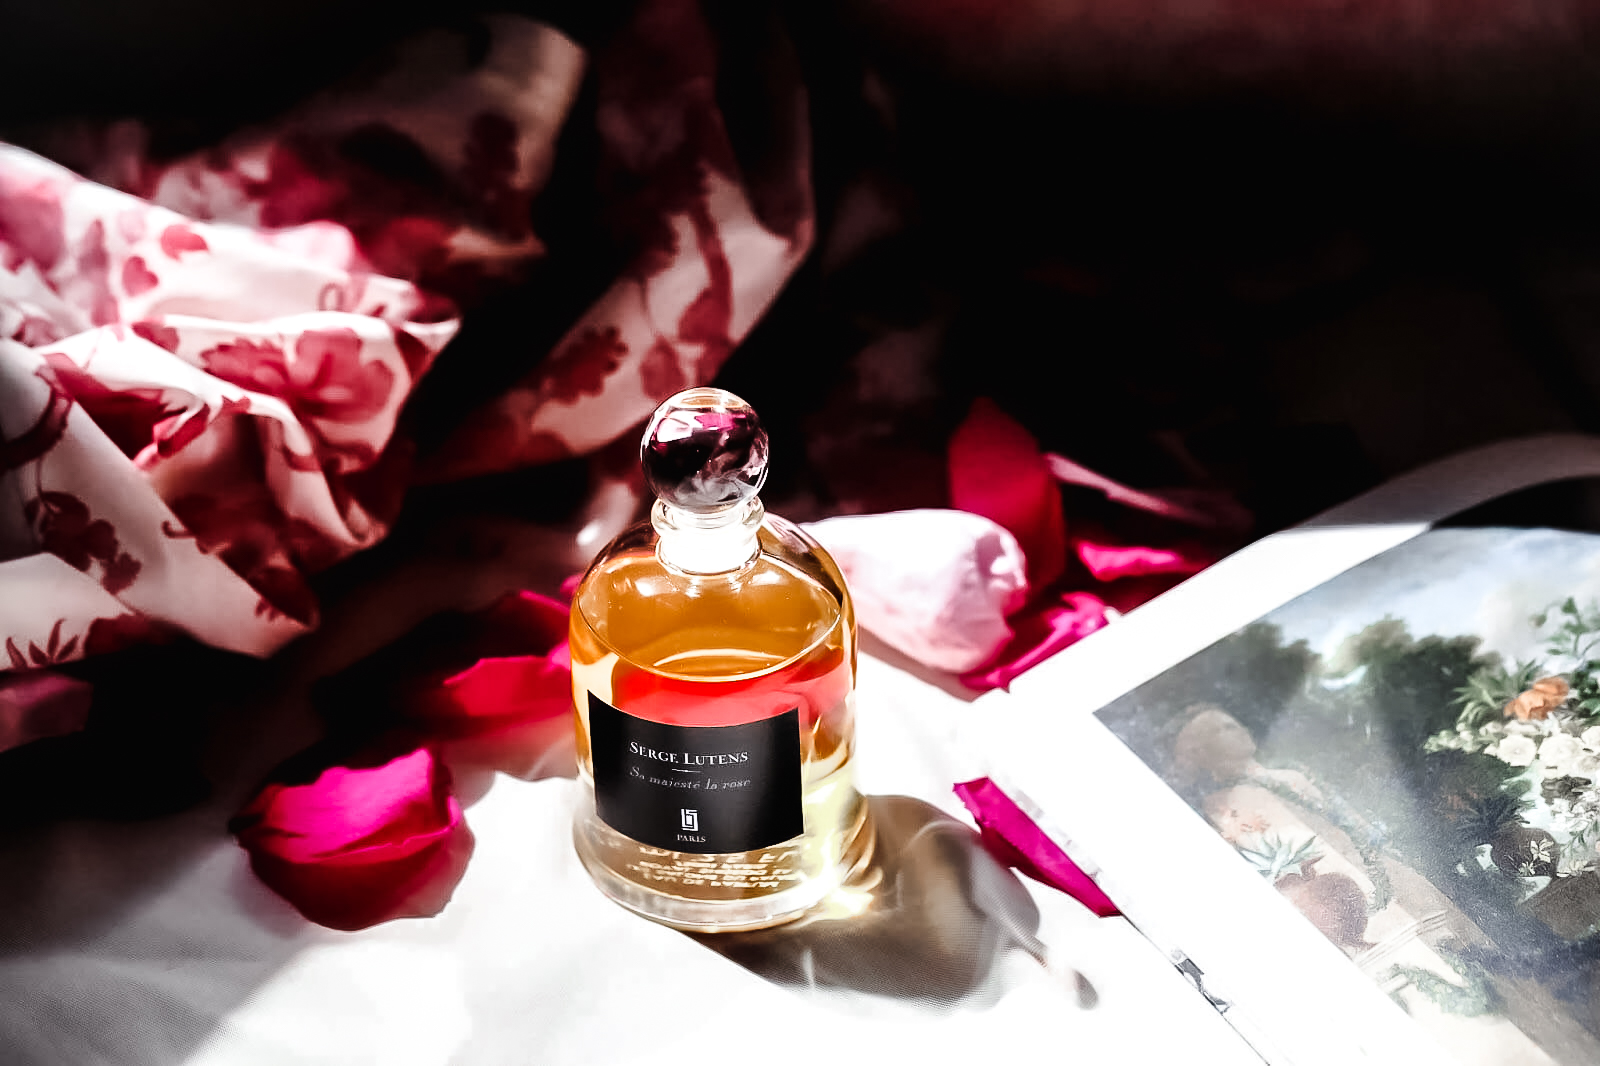 Sa Majeste La Rose Serge Lutens critique